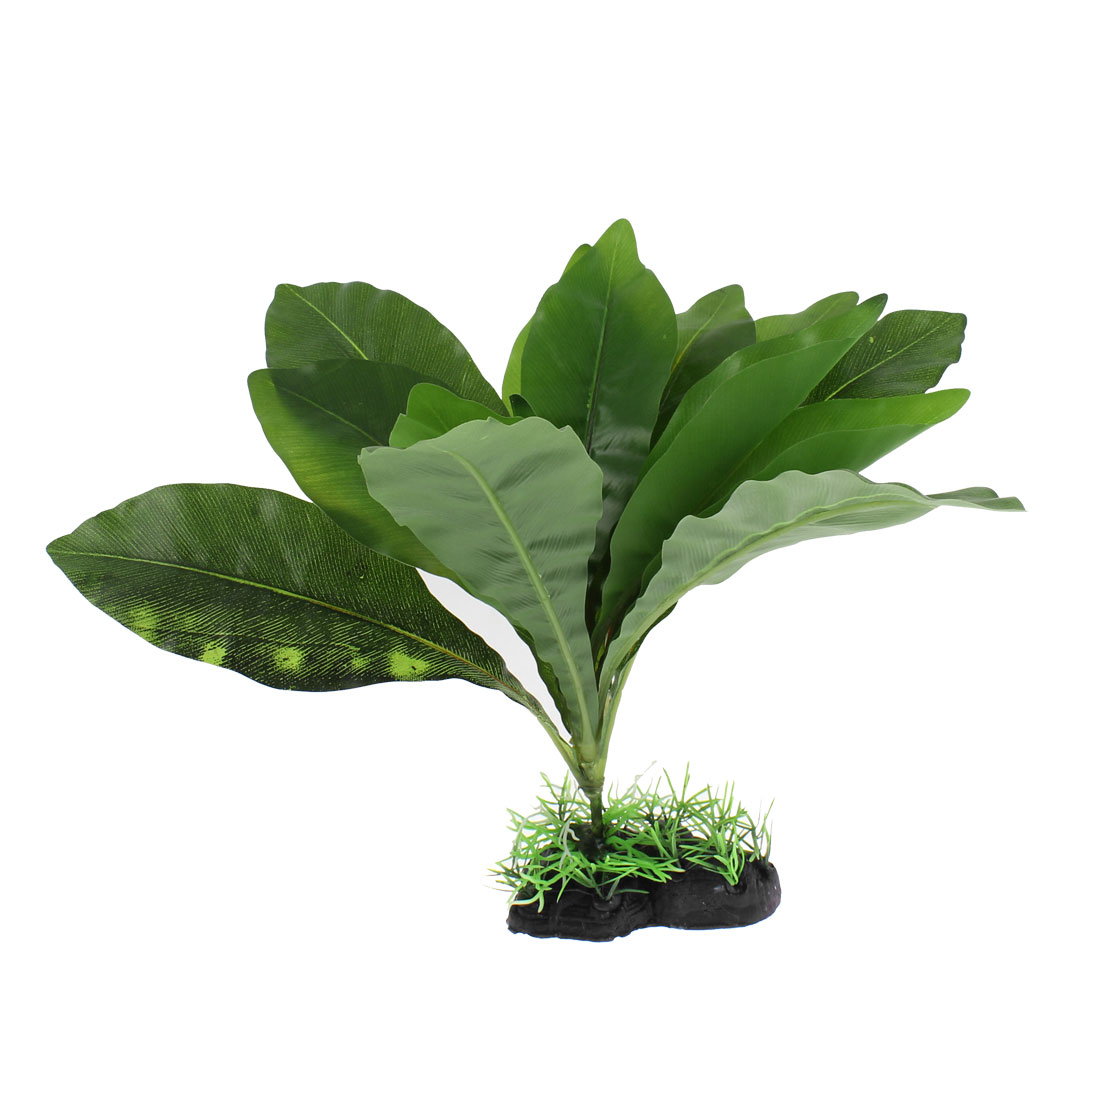 "Aquarium Plastic Artificial Sword Leaf Plant Decor Green 11"" Height"